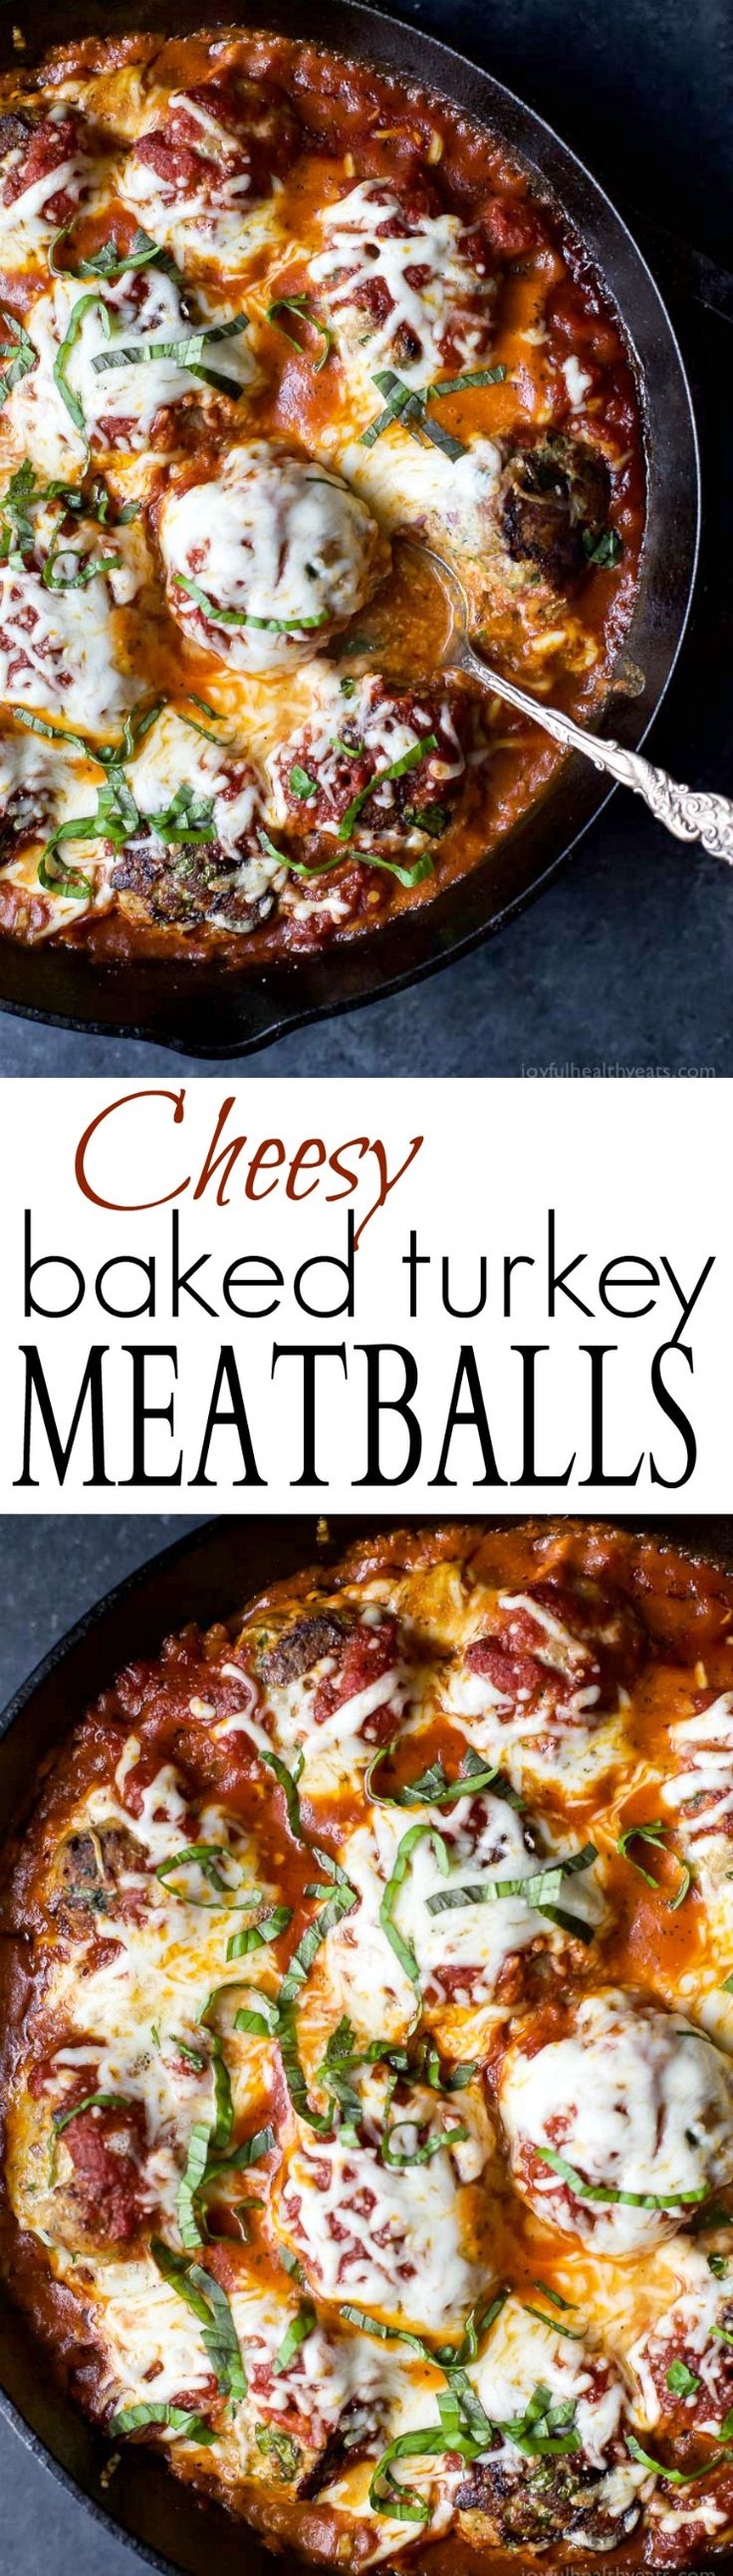 Cheesy Baked Turkey Meatballs cooked in Marinara sauce to keep them flavorful…